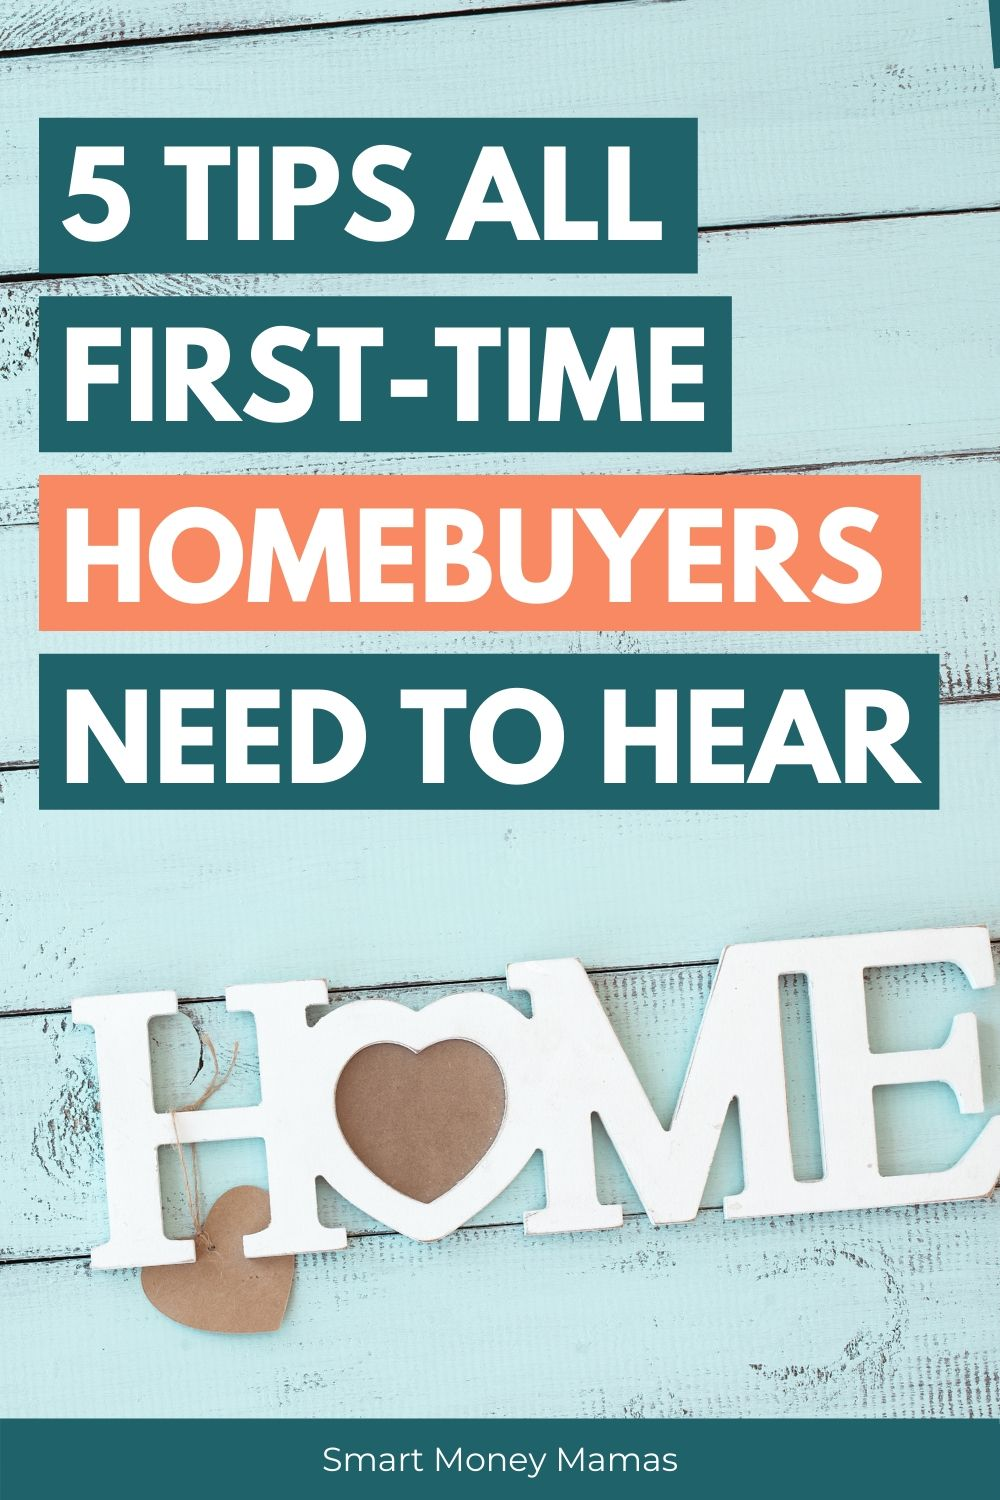 5 Tips All First-Time Homebuyers Need to Hear